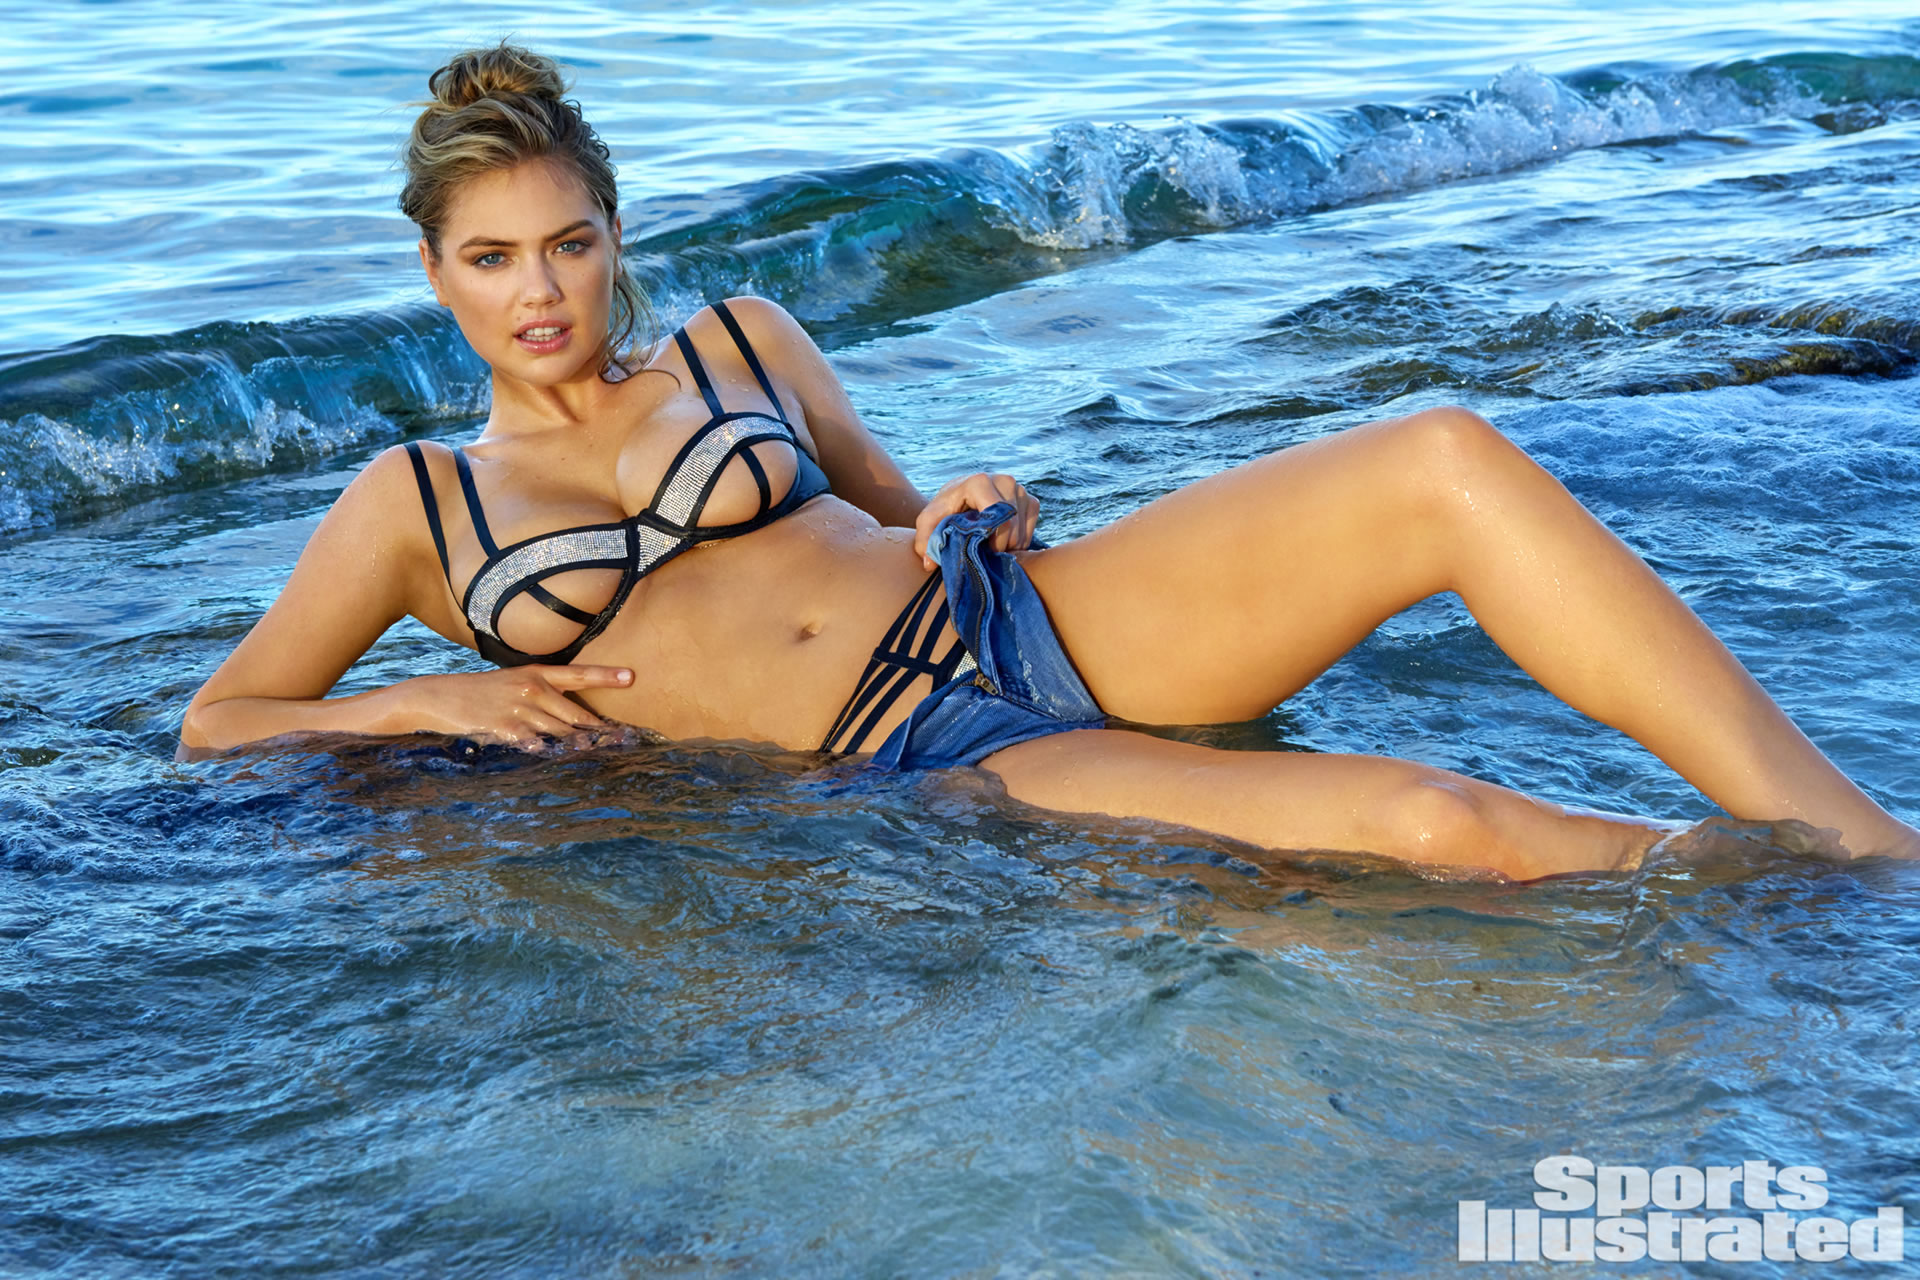 Kate upton sports illustrated nude think, that